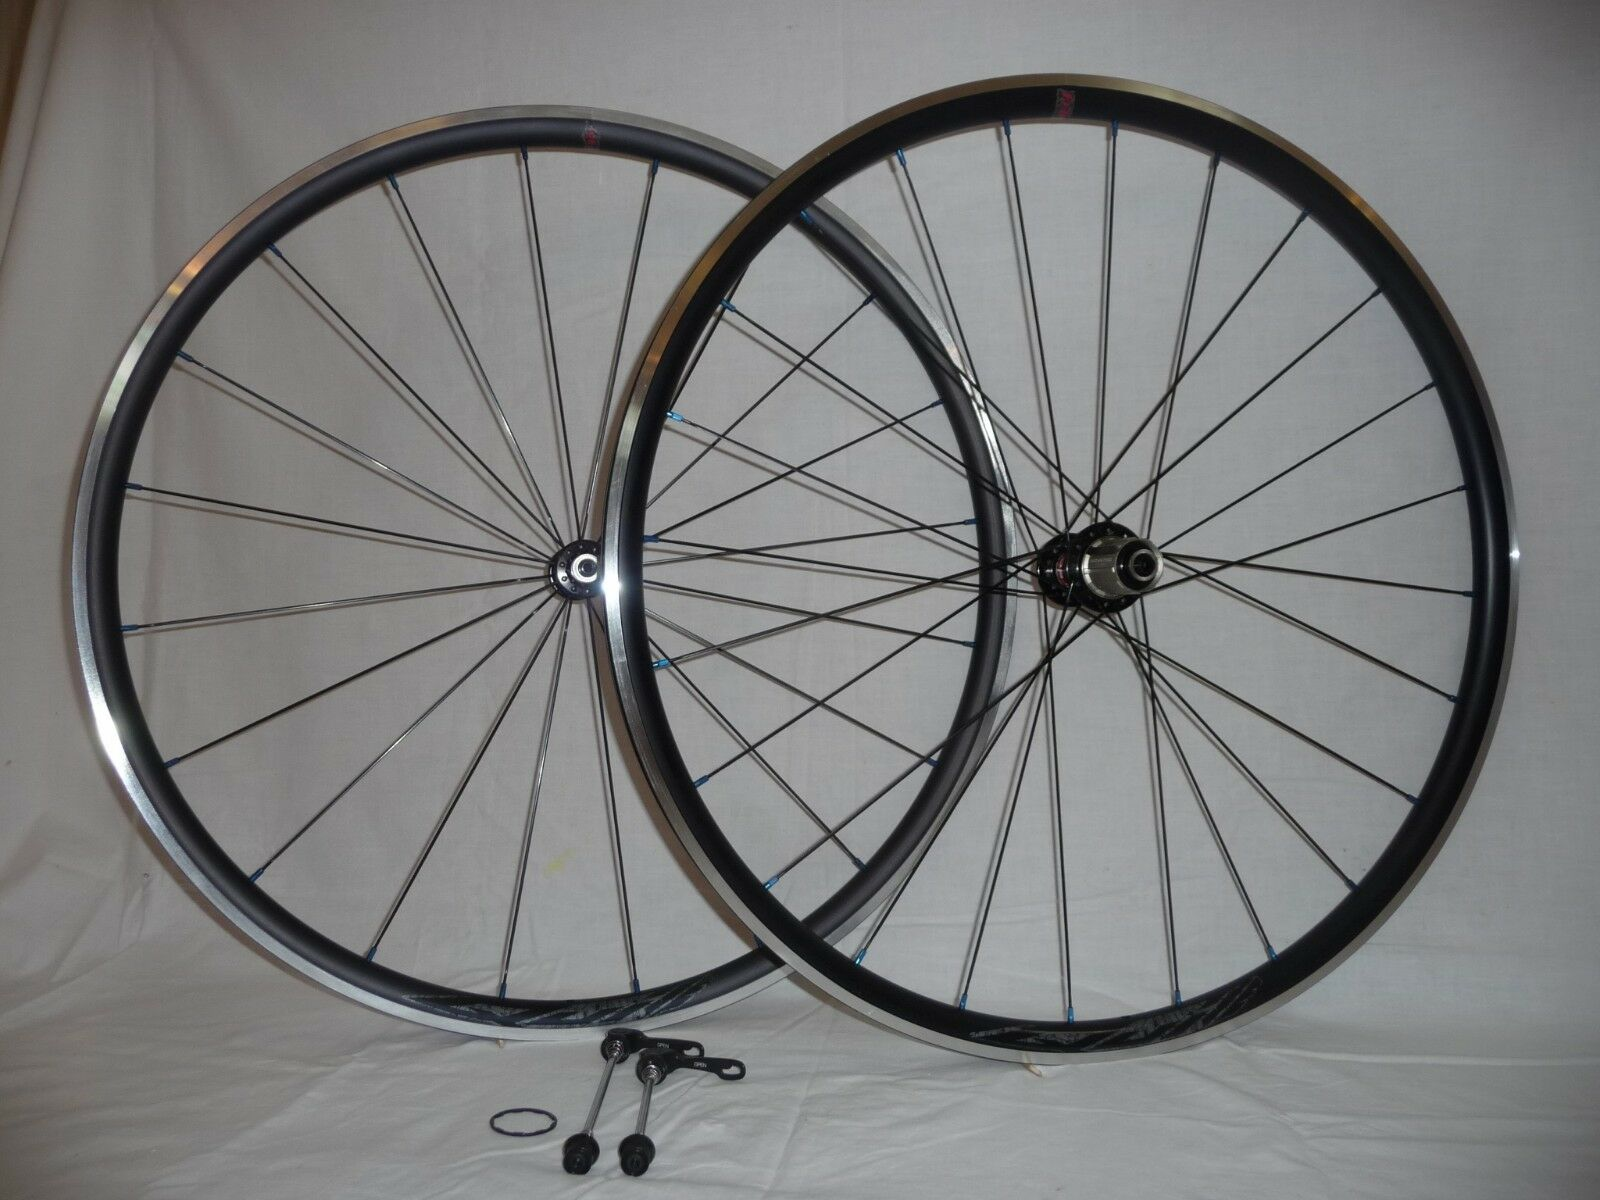 Velocity Quill wheels with Novatec hubs for road, race, or sportives.